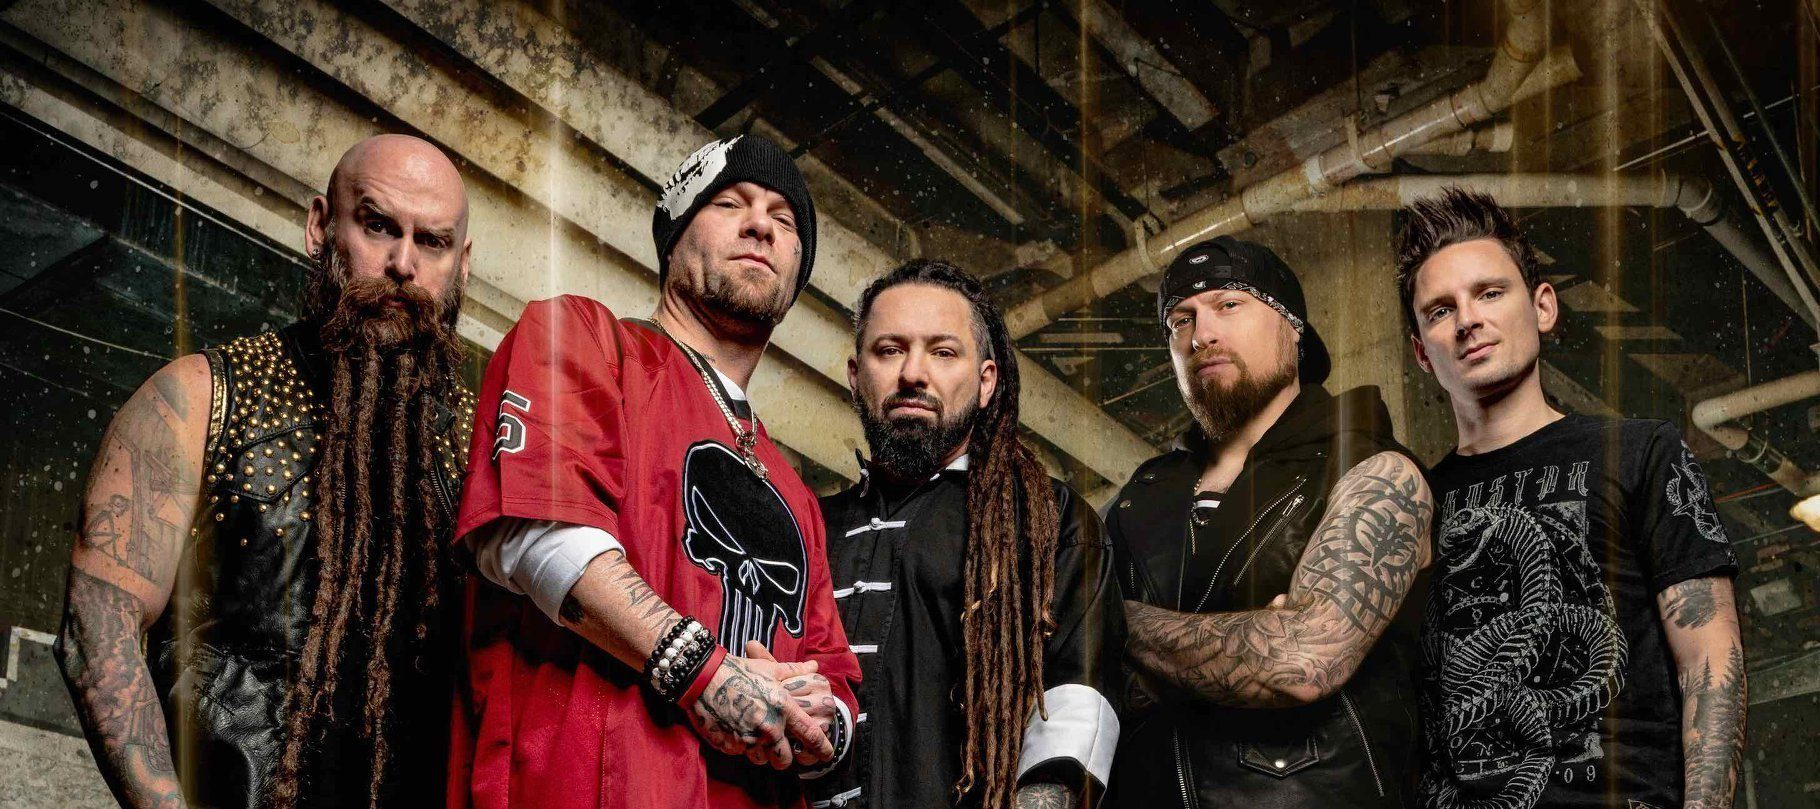 5FDP Band photo 2020